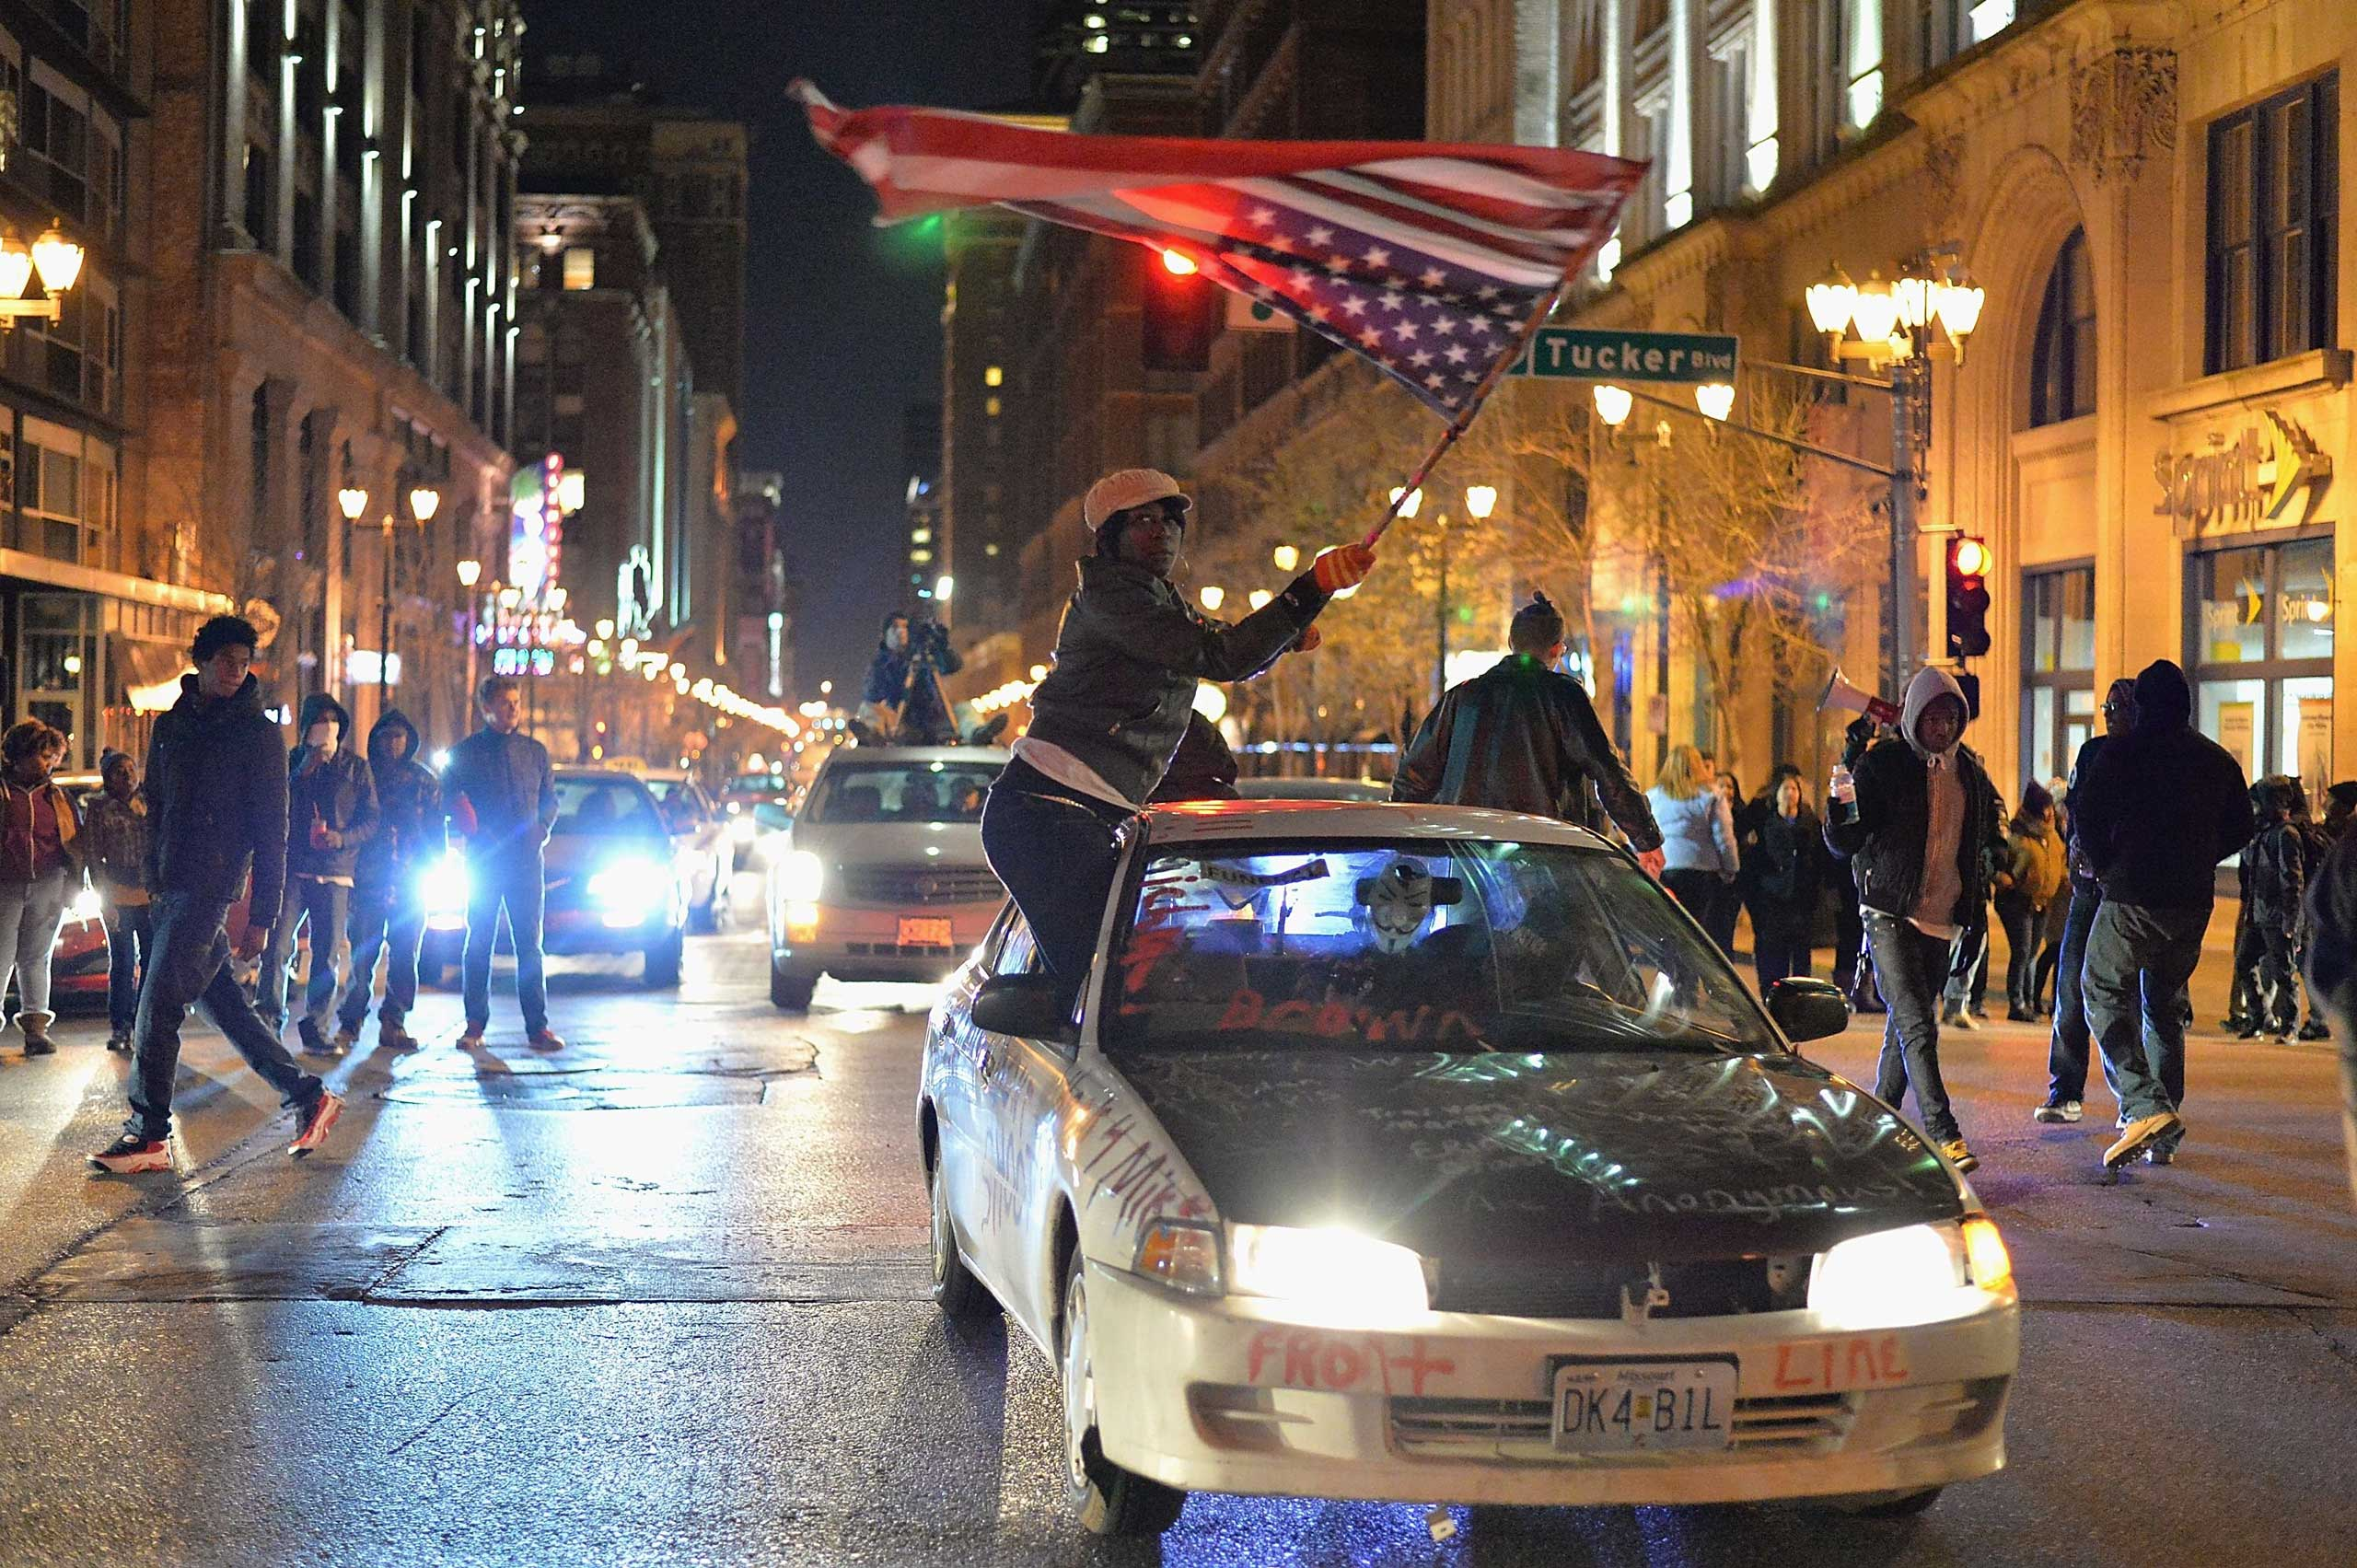 Demonstrators march in protest on the streets of St. Louis on Dec. 3, 2014.